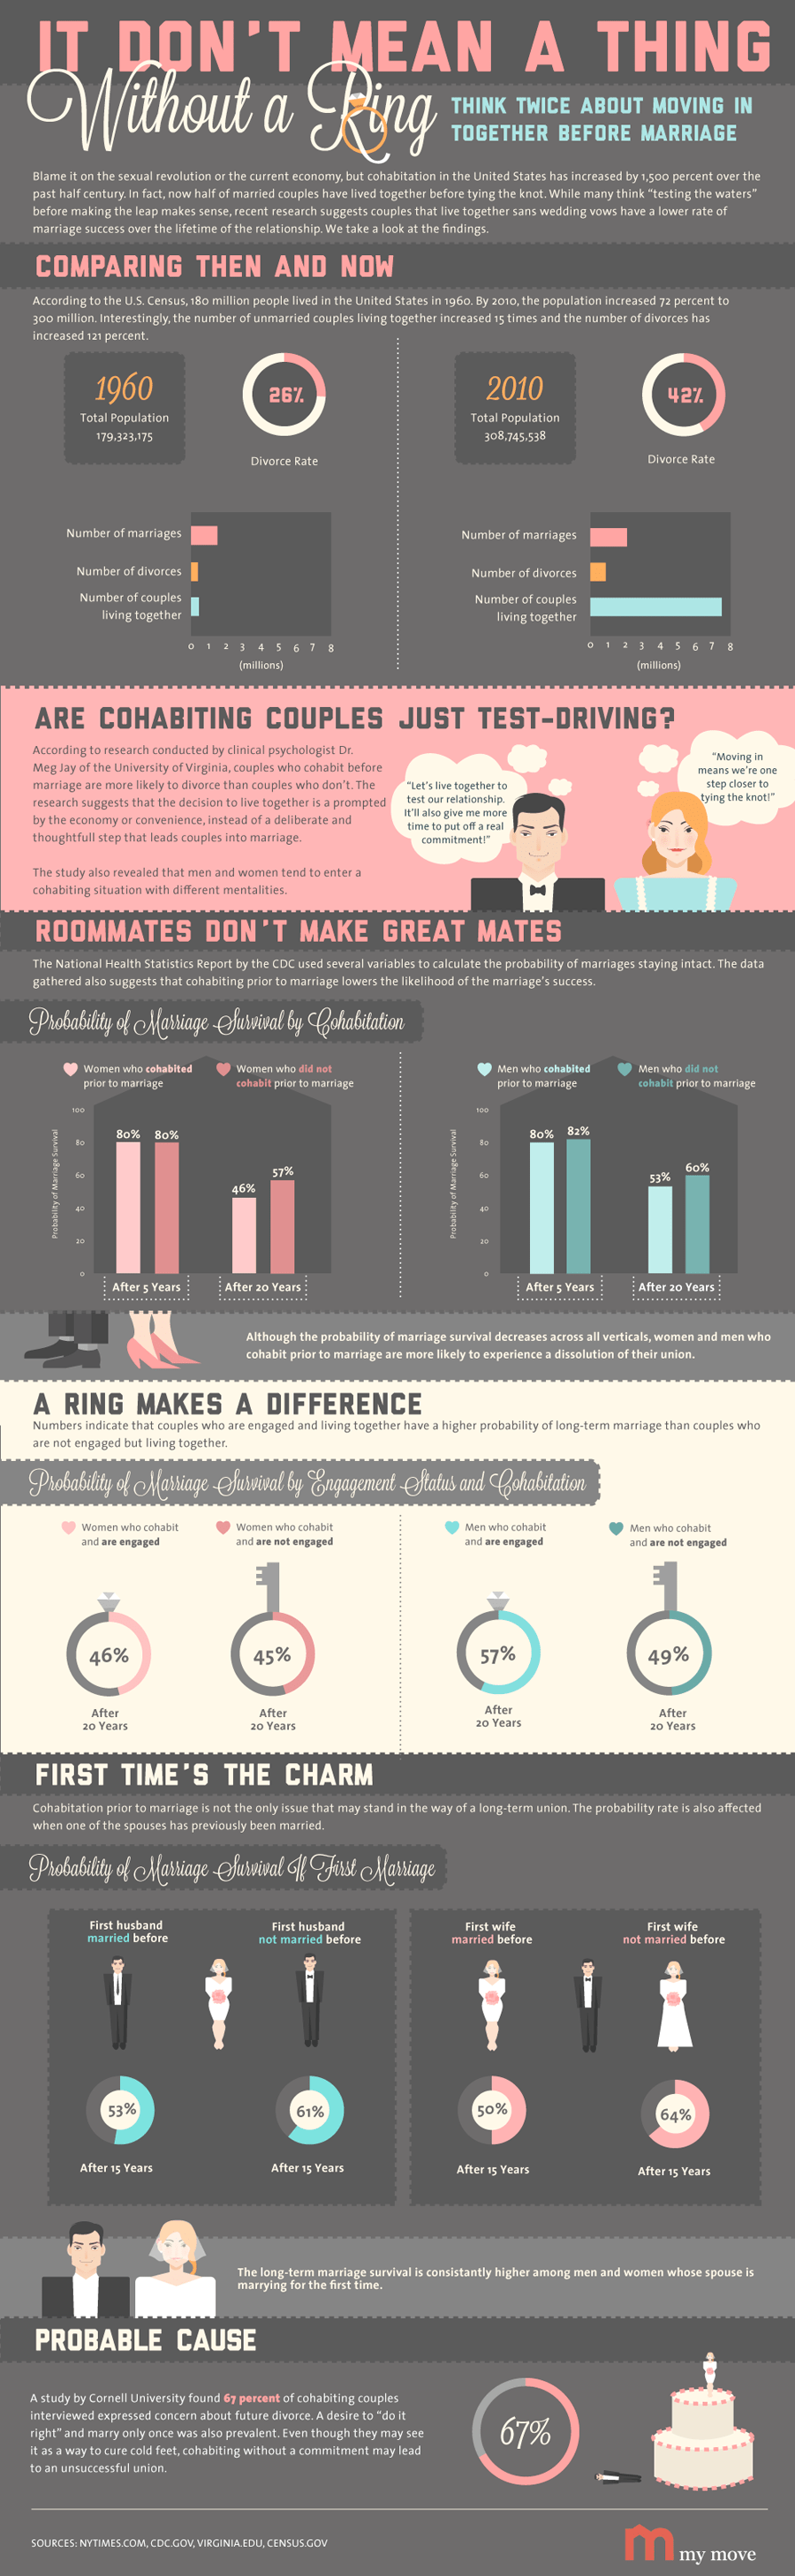 INFOGRAPHIC: It Don't Mean a Thing Without a Ring